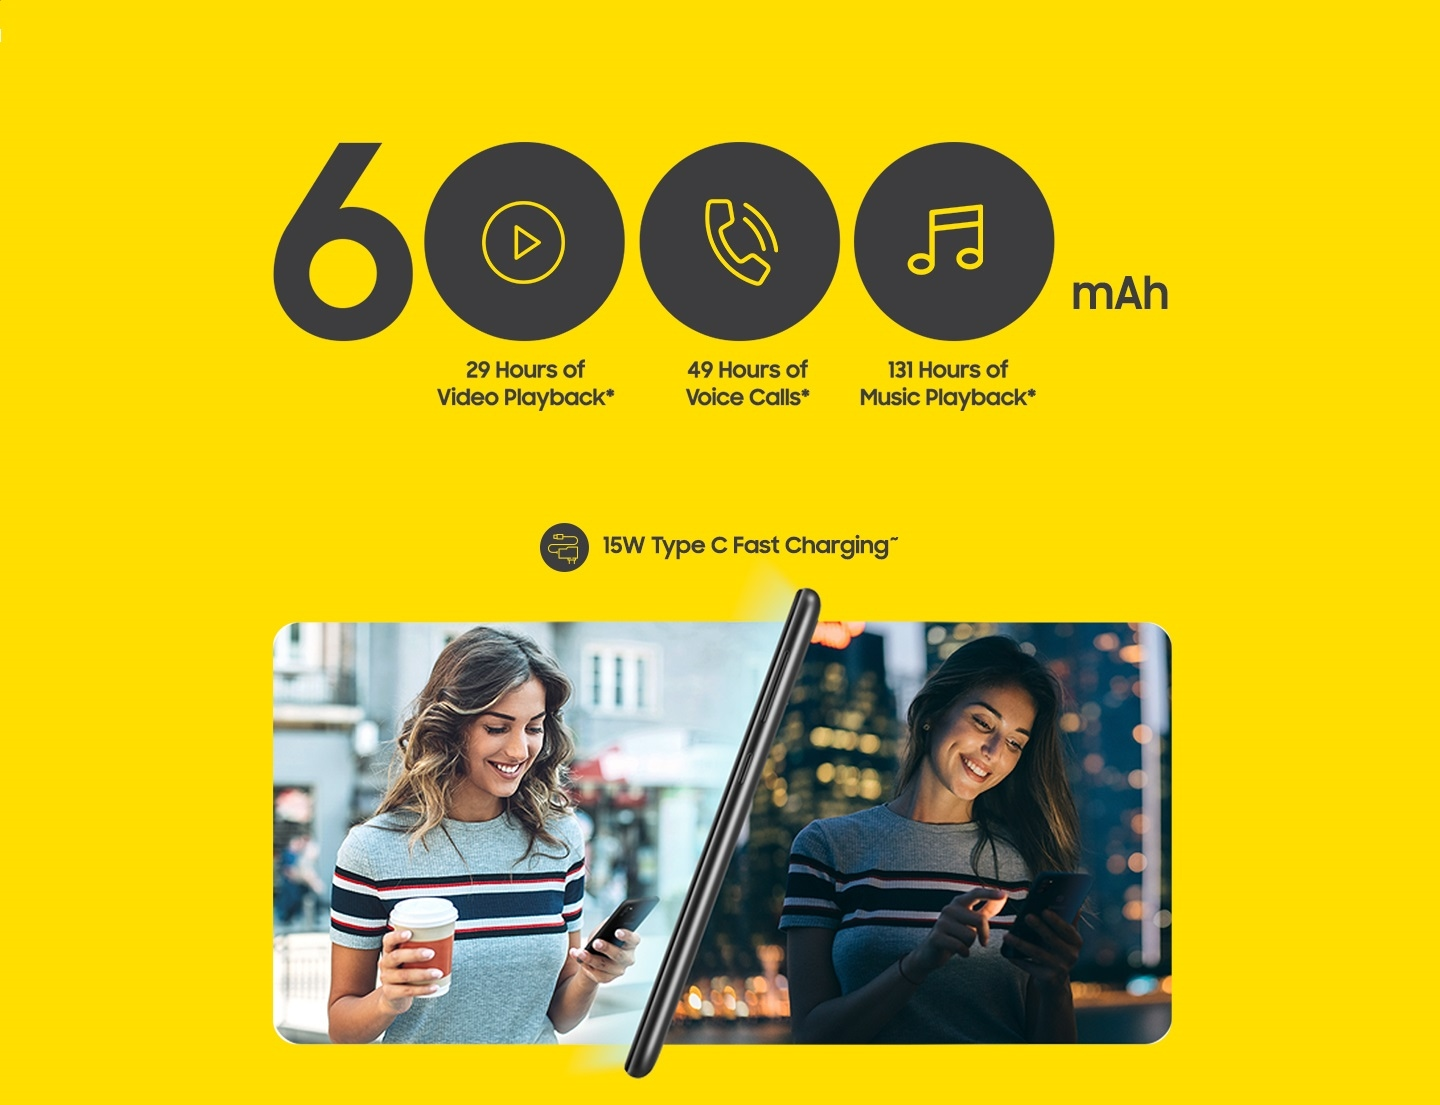 Galaxy M30s - 6000 mAh battery